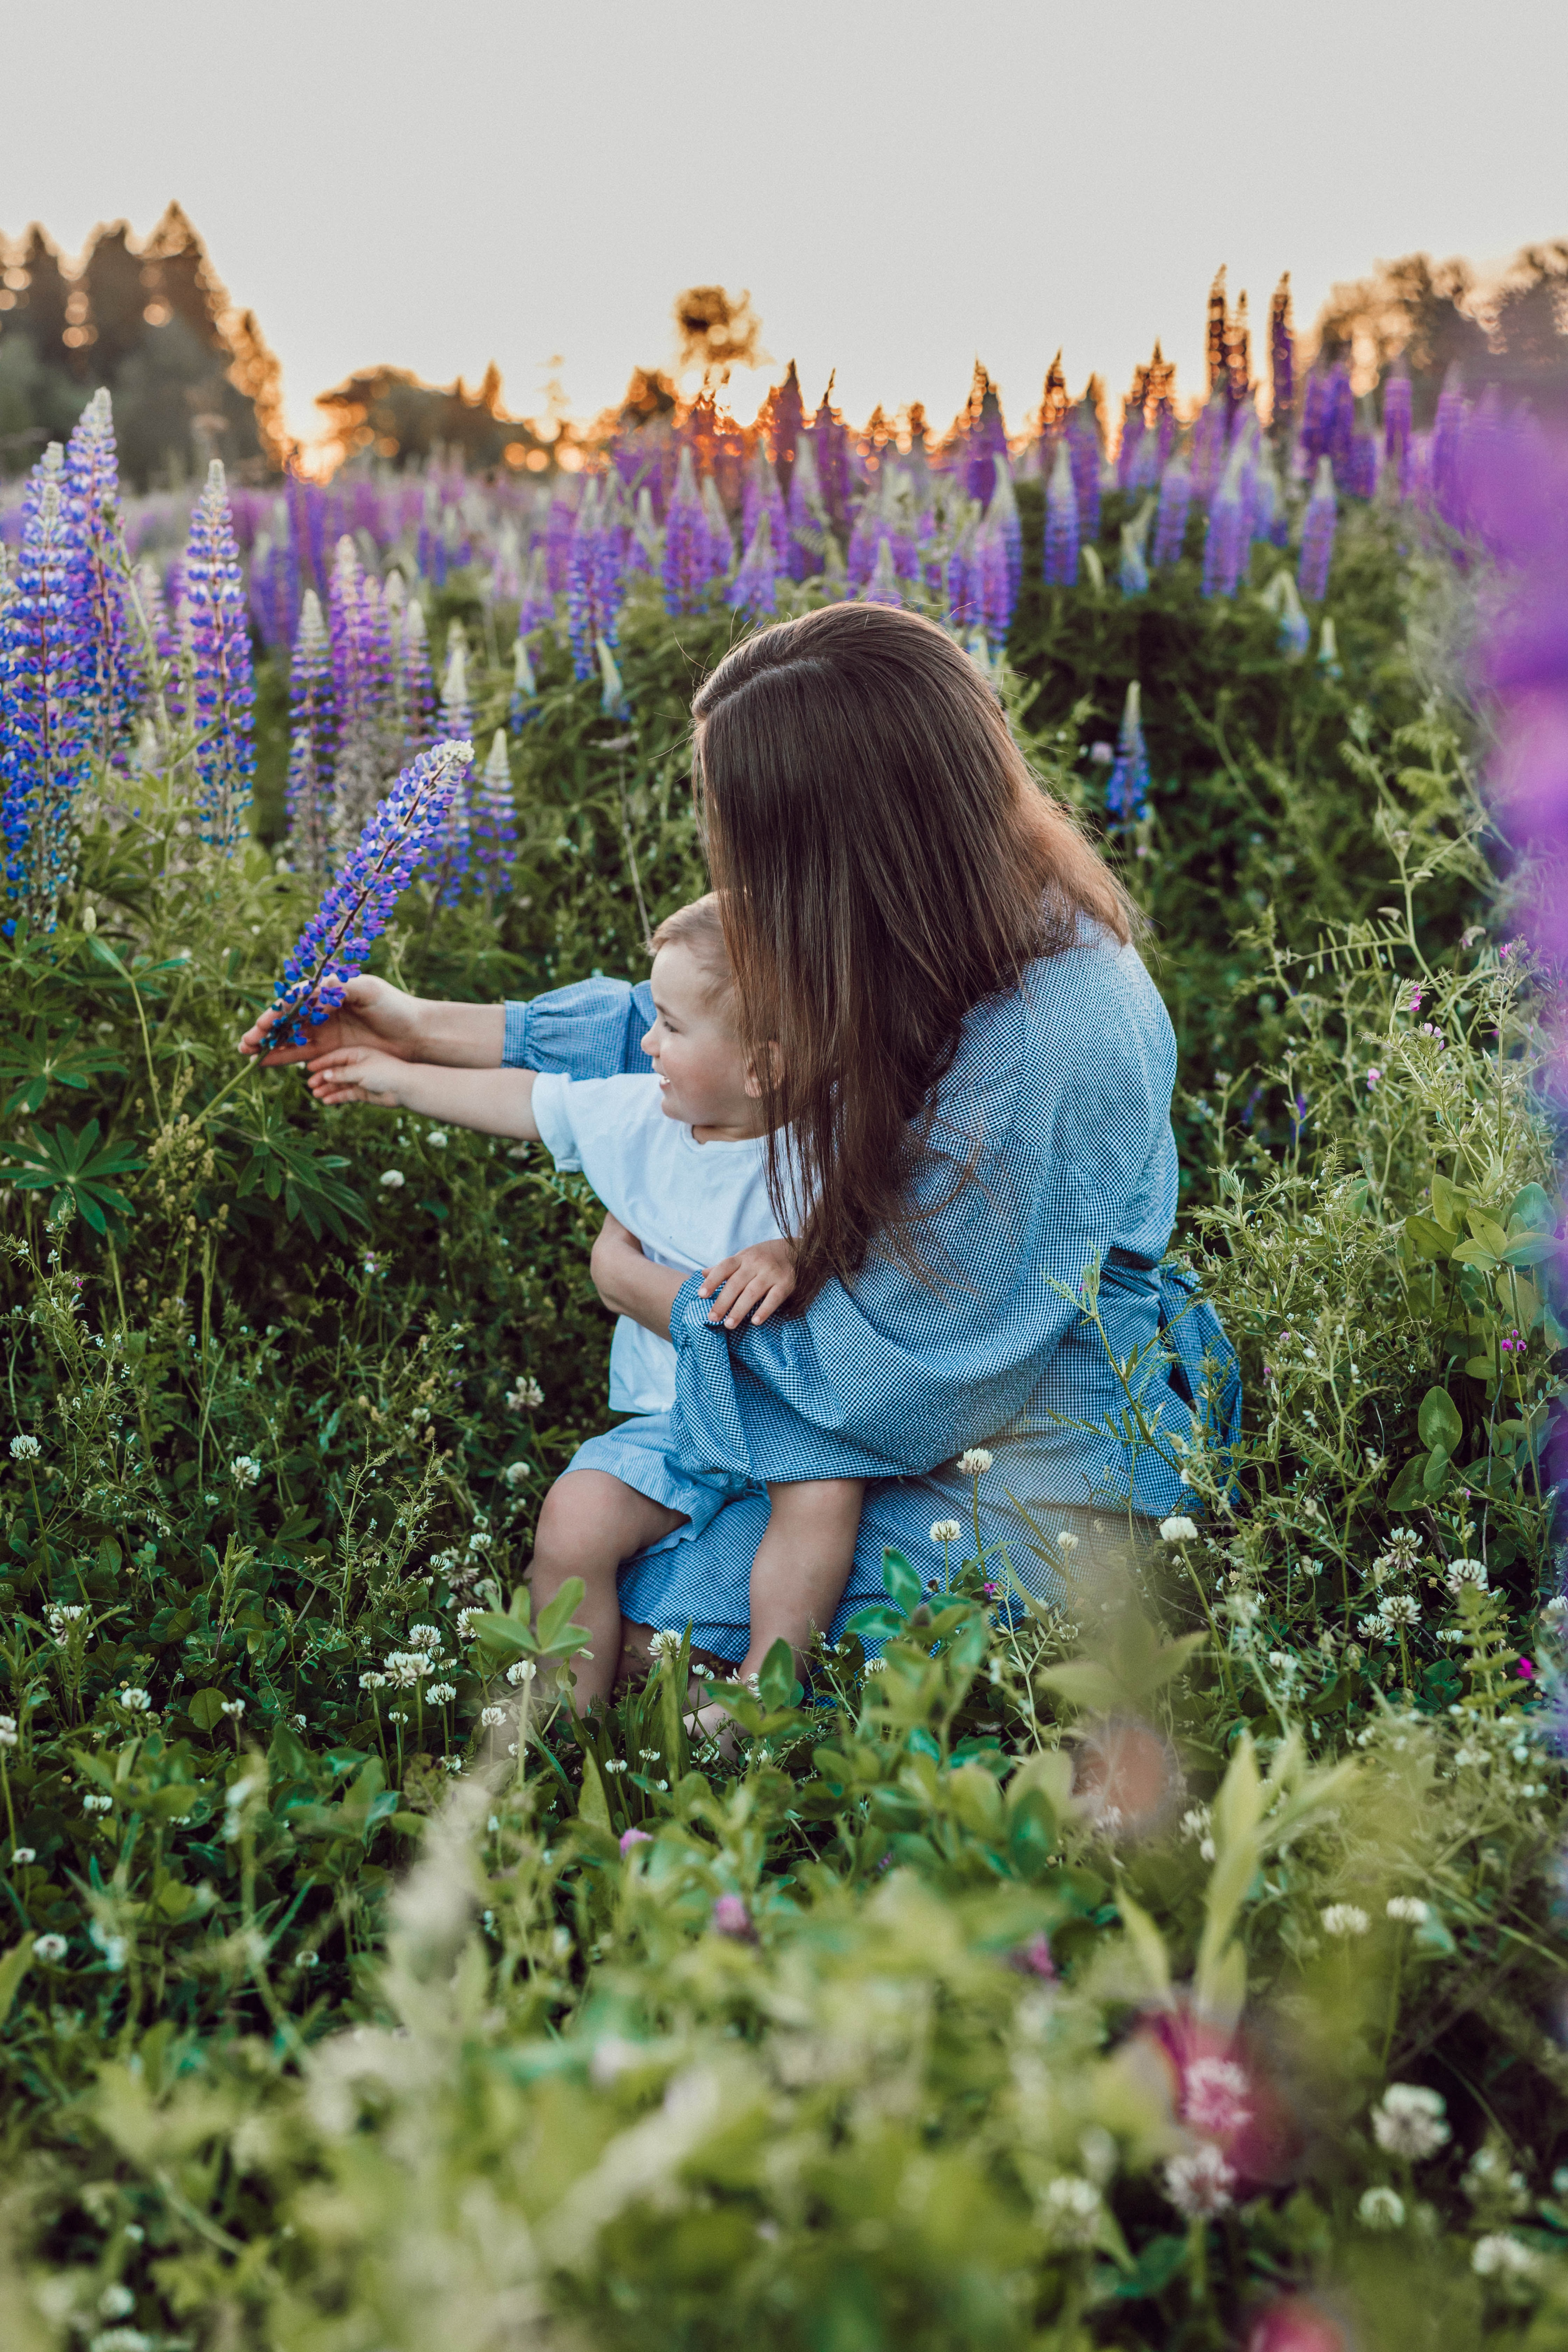 Mom holding young son in field of purple flowers